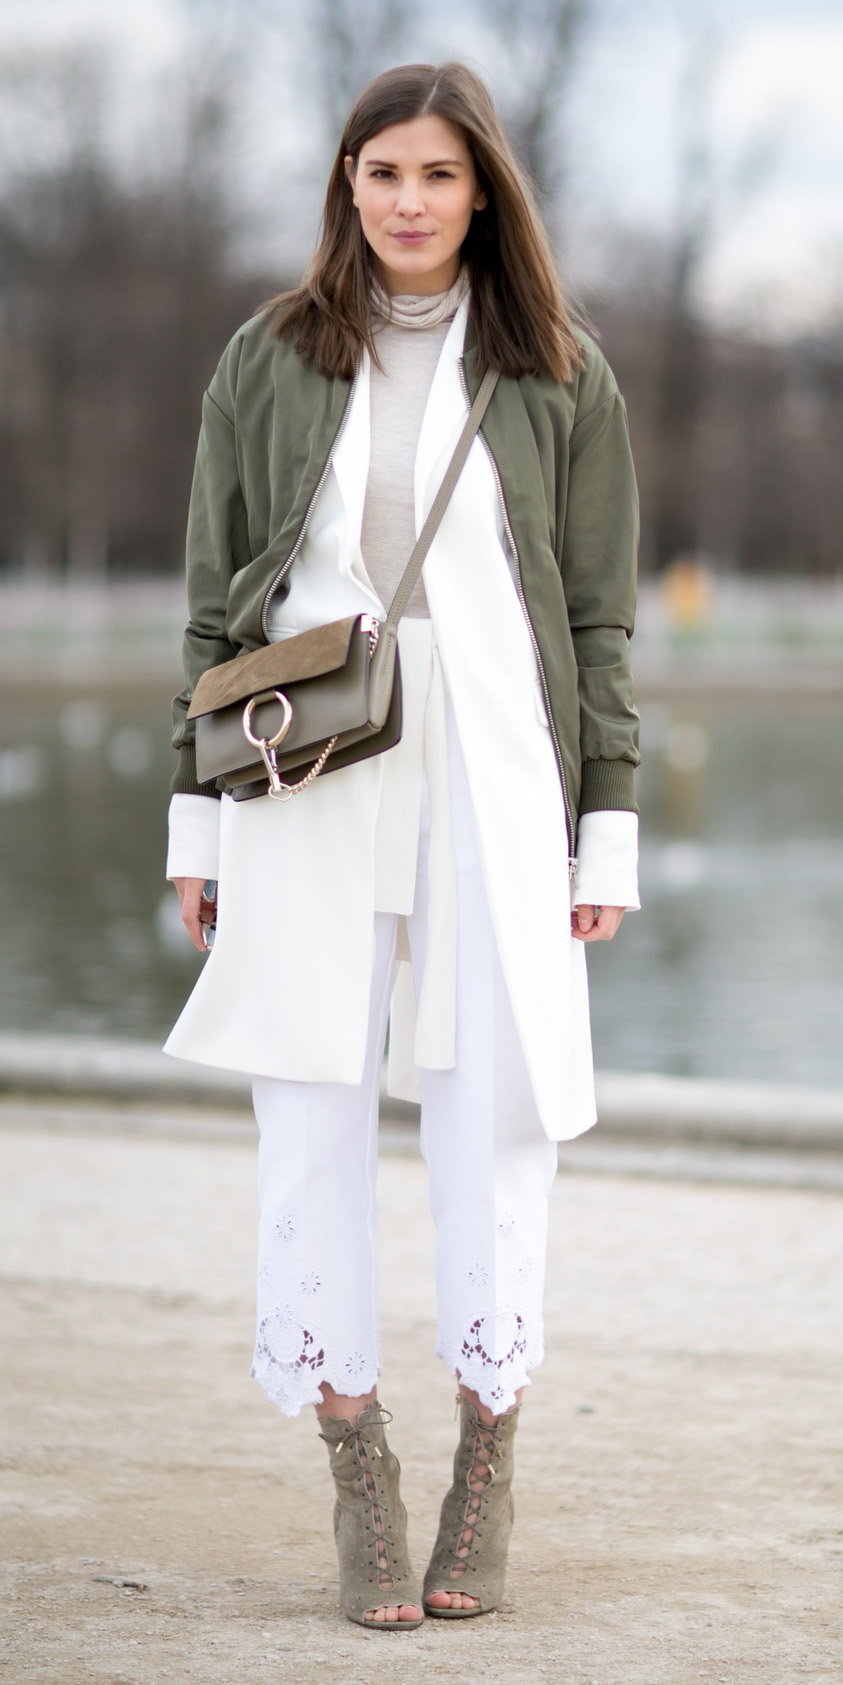 white-culottes-pants-tan-tee-turtleneck-green-bag-white-jacket-coat-green-olive-jacket-bomber-hairr-green-shoe-booties-fall-winter-lunch.jpg